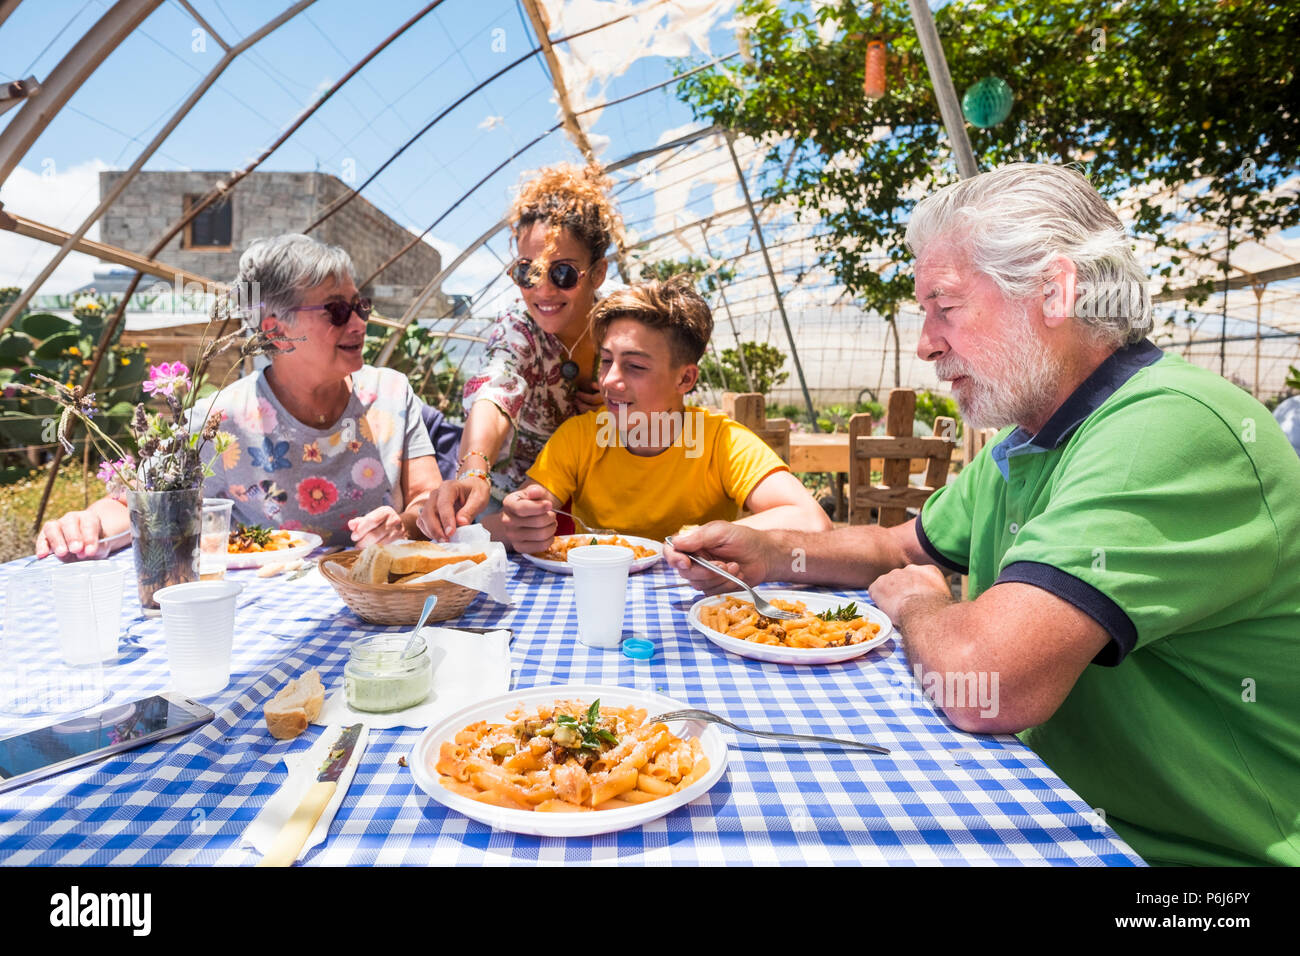 nice leisure activity outdoor in natural bio restaurant for nice beautiful caucasian family with all generations from young to old. mother, son, grand - Stock Image